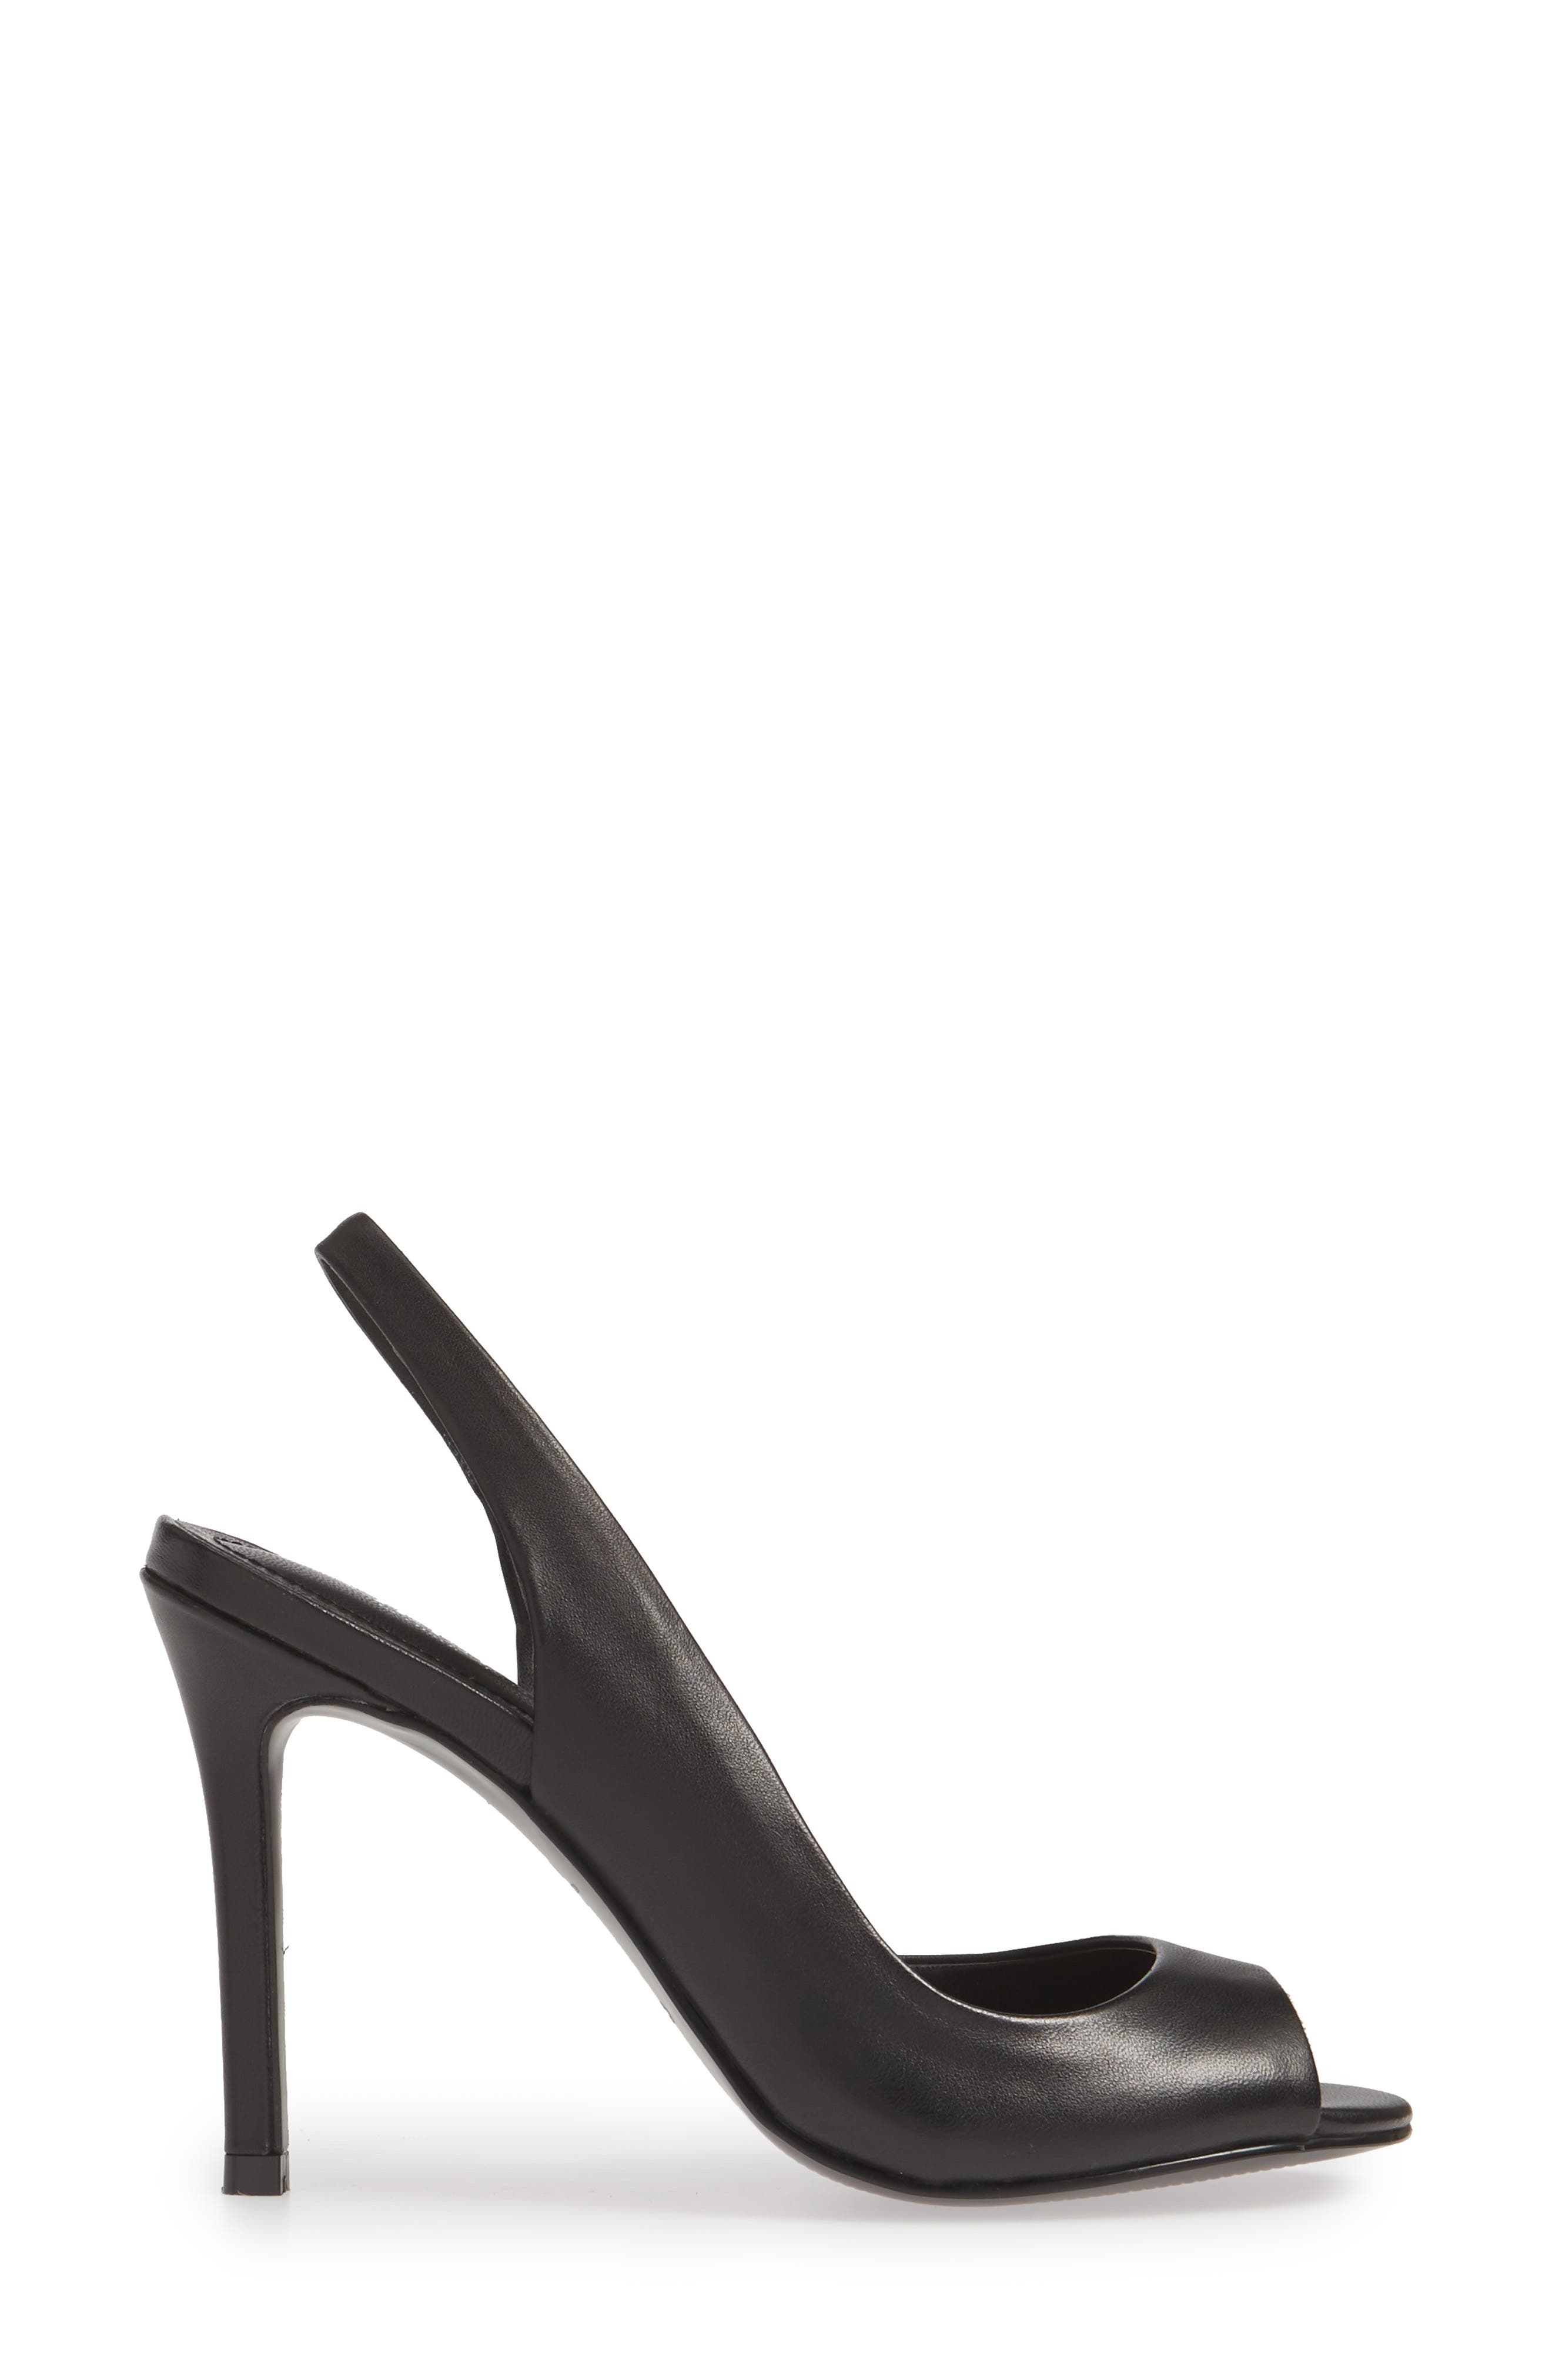 CHARLES BY CHARLES DAVID, Rexx Sandal, Alternate thumbnail 3, color, BLACK LEATHER